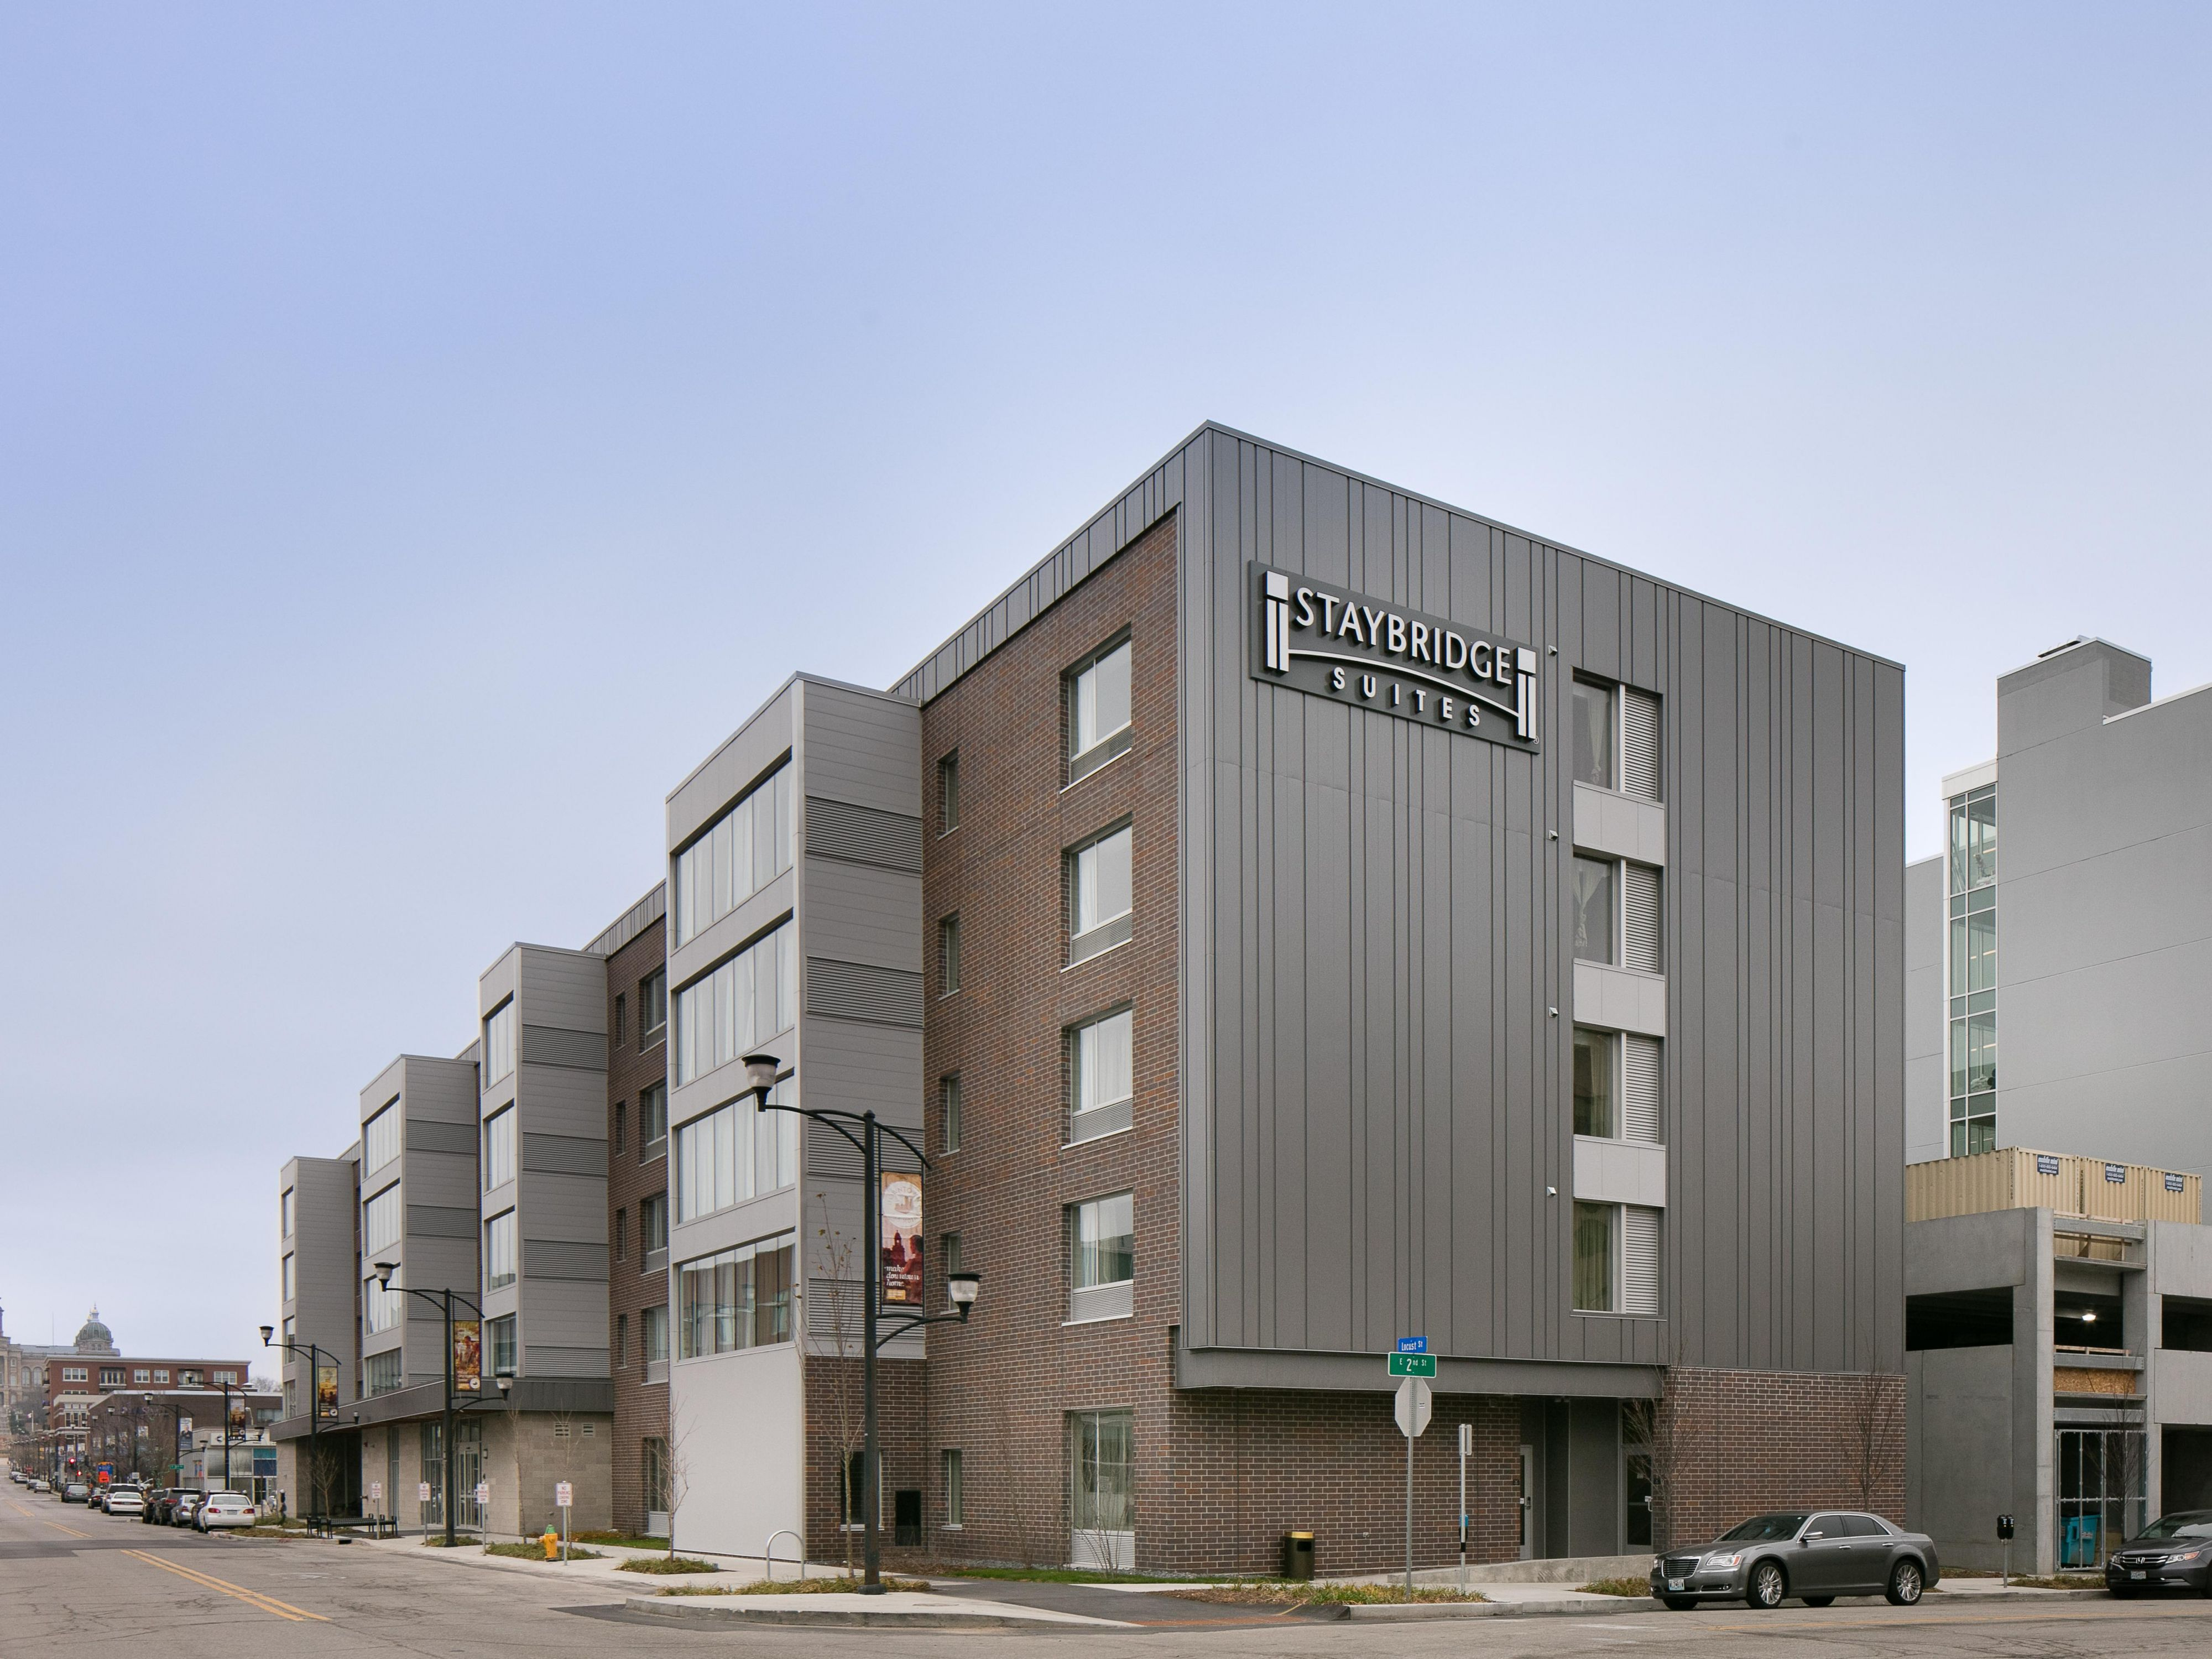 Staybridge Suites Des Moines Downtown Extended Stay Hotel In Des Moines United States With